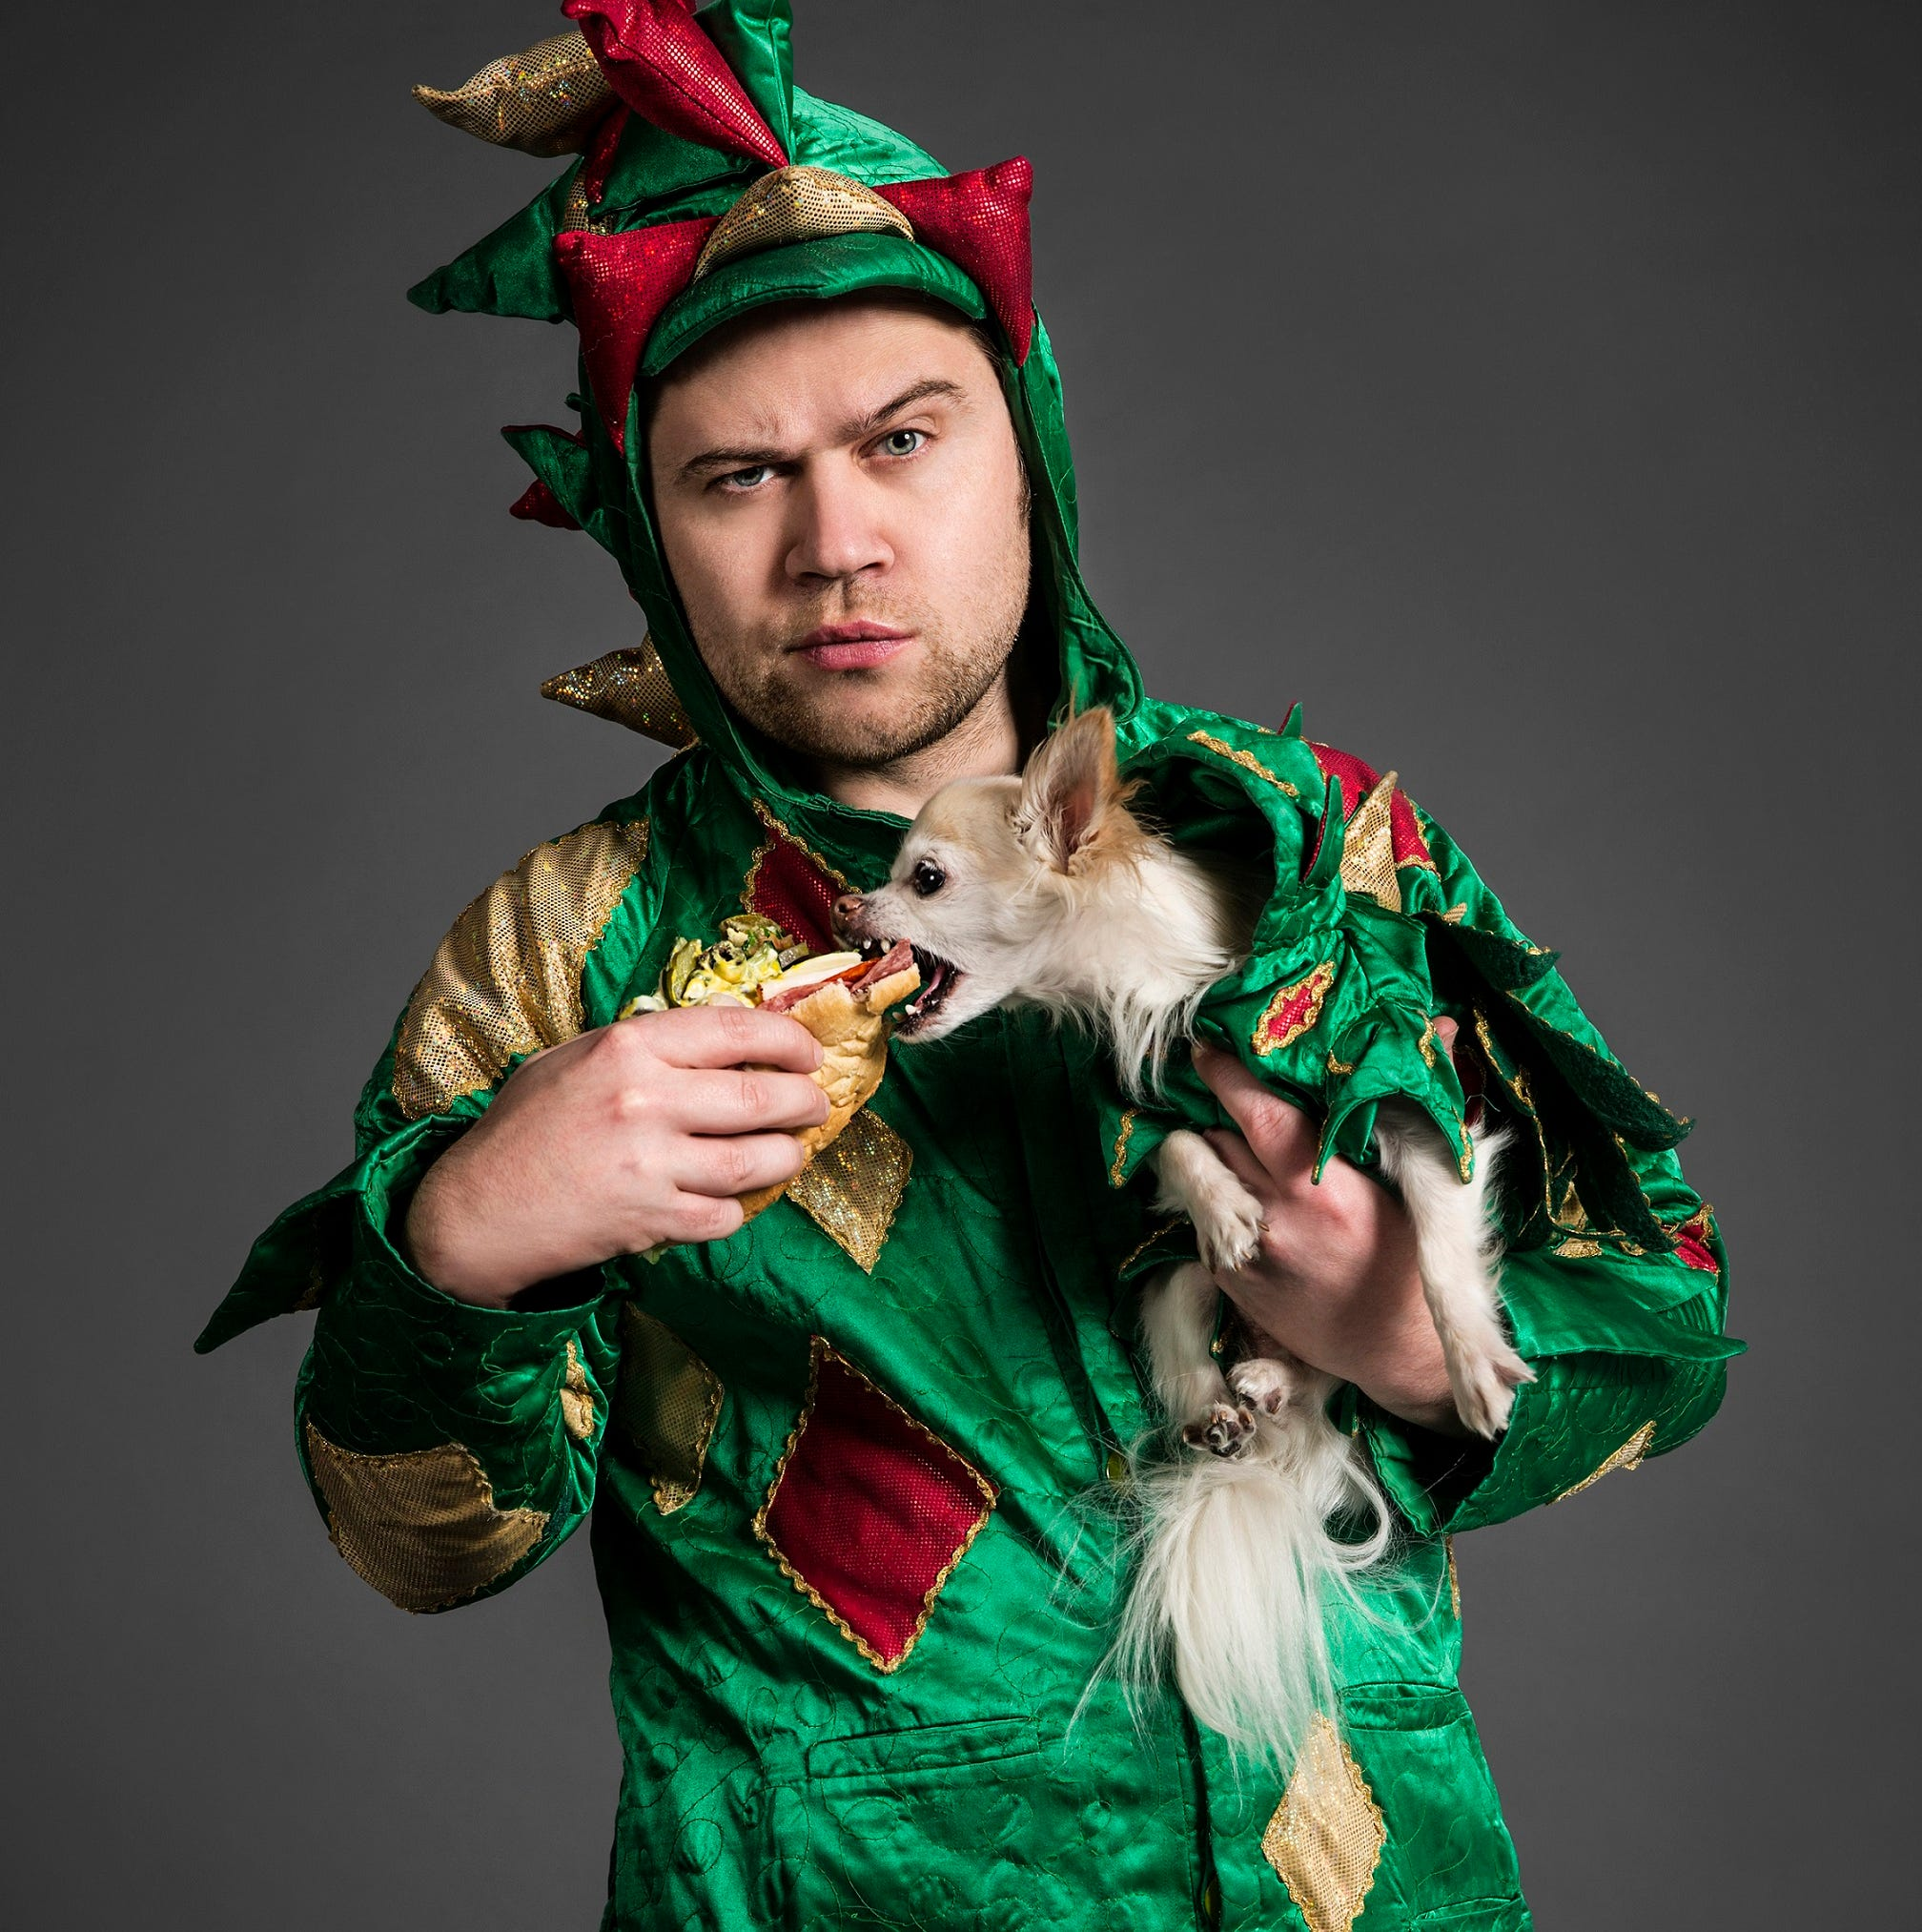 Half magic, half comedy, all dragon: Piff the Magic Dragon coming to Sioux Falls